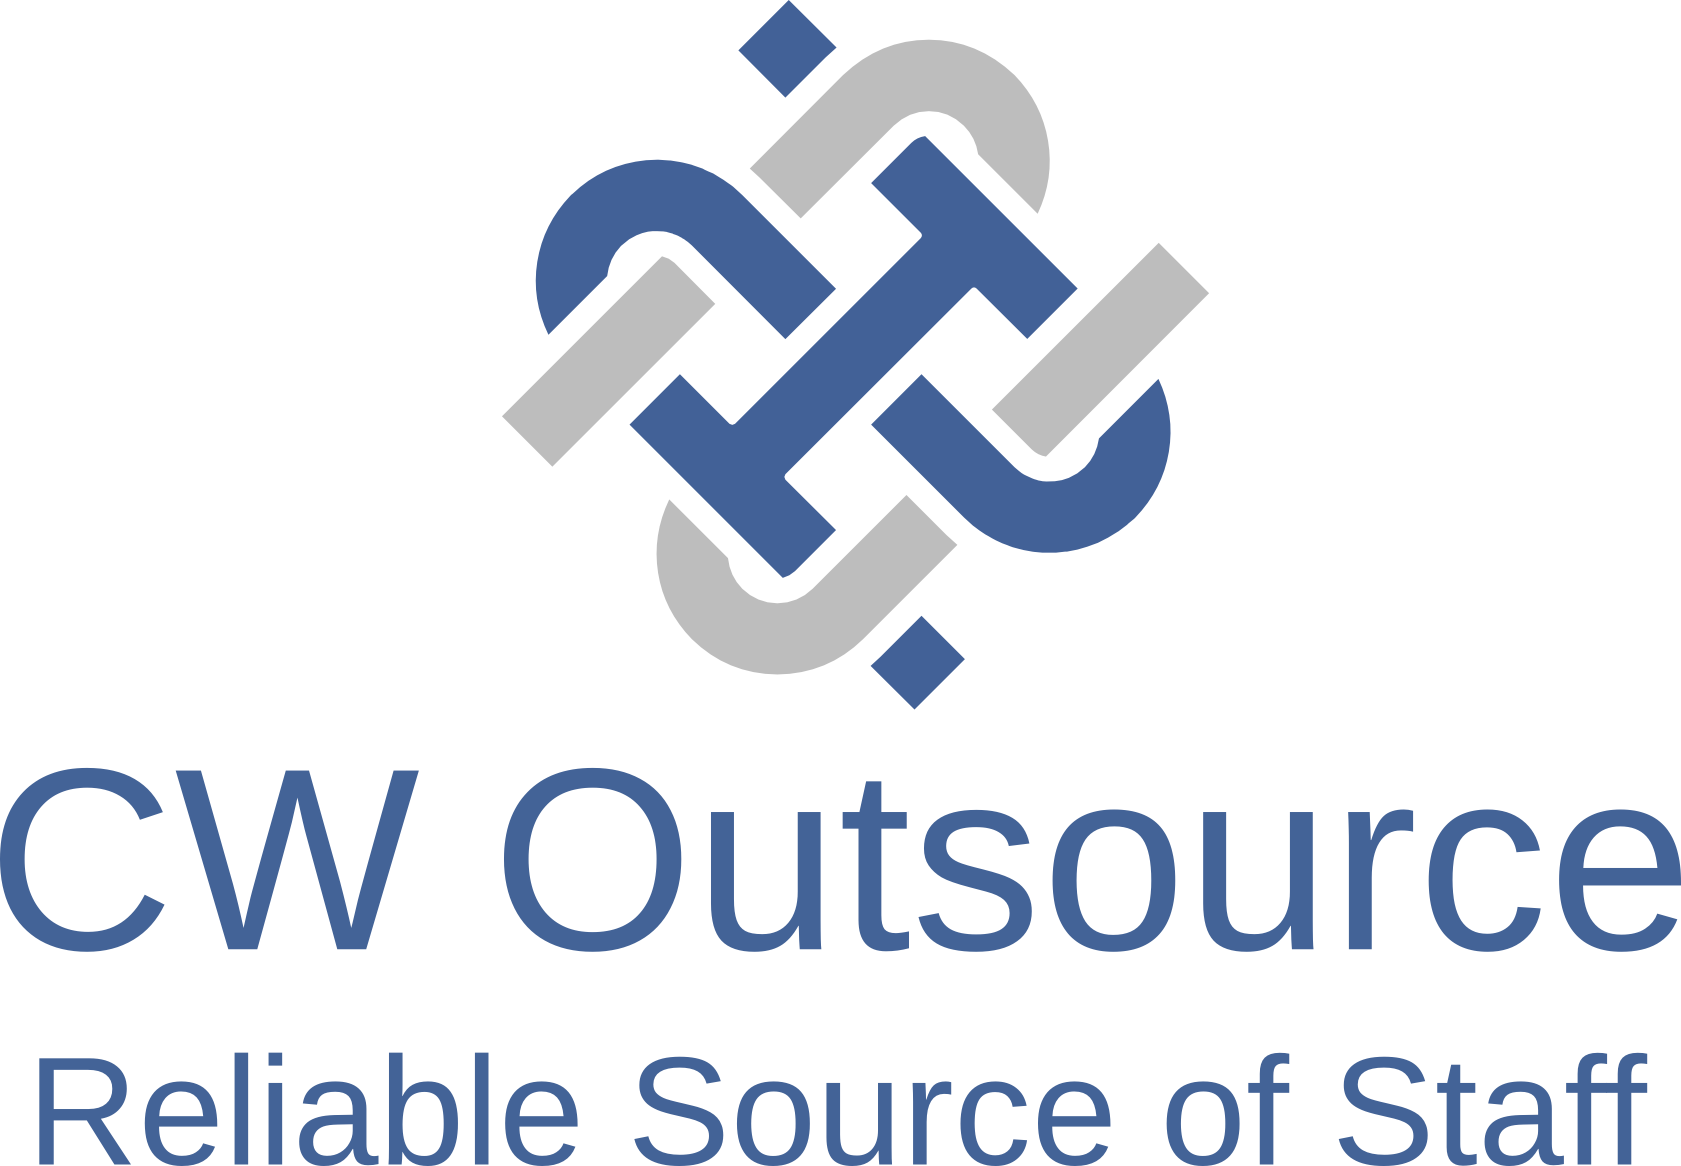 CW Outsource